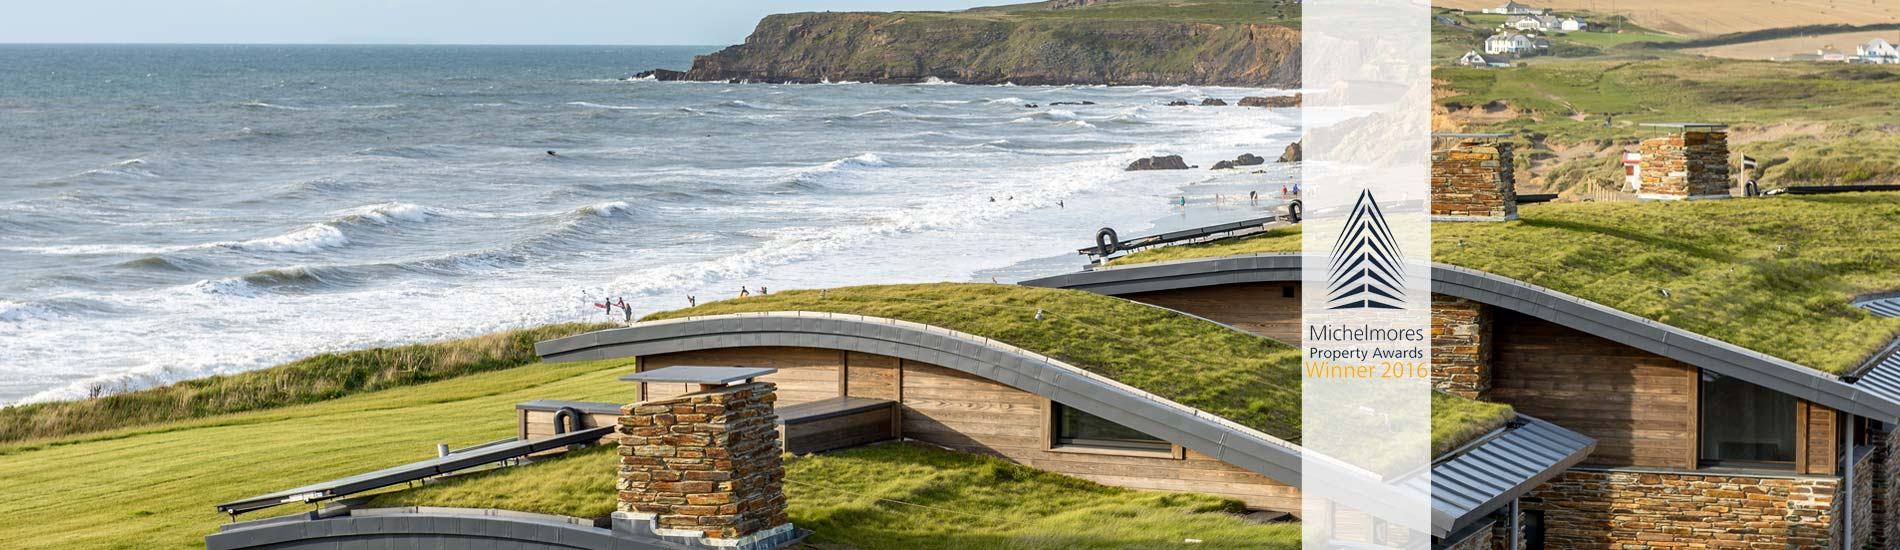 Atlantic View Widemouth Bay Architects in Cornwall The Bazeley Partnership Beach Retreats Michelmores Property Awards